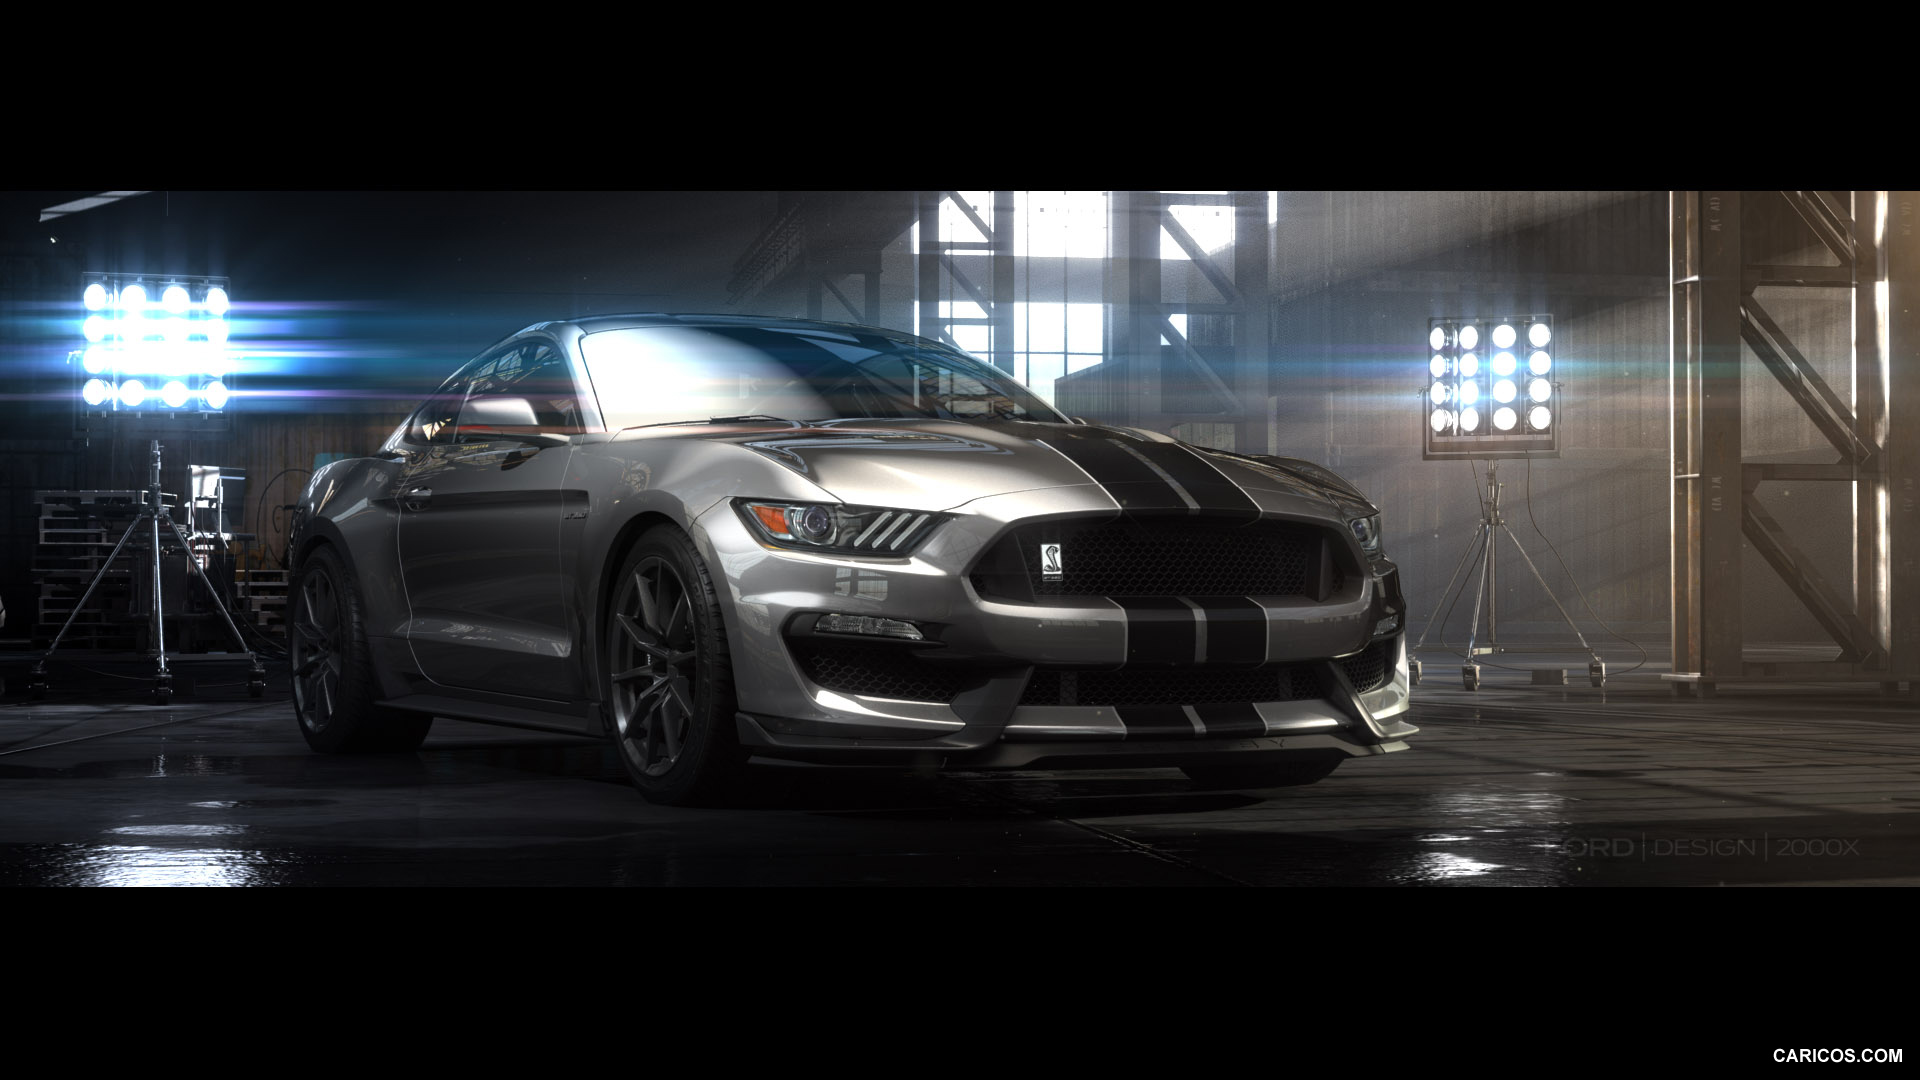 1920x1080 - Shelby Mustang GT 350 Wallpapers 13